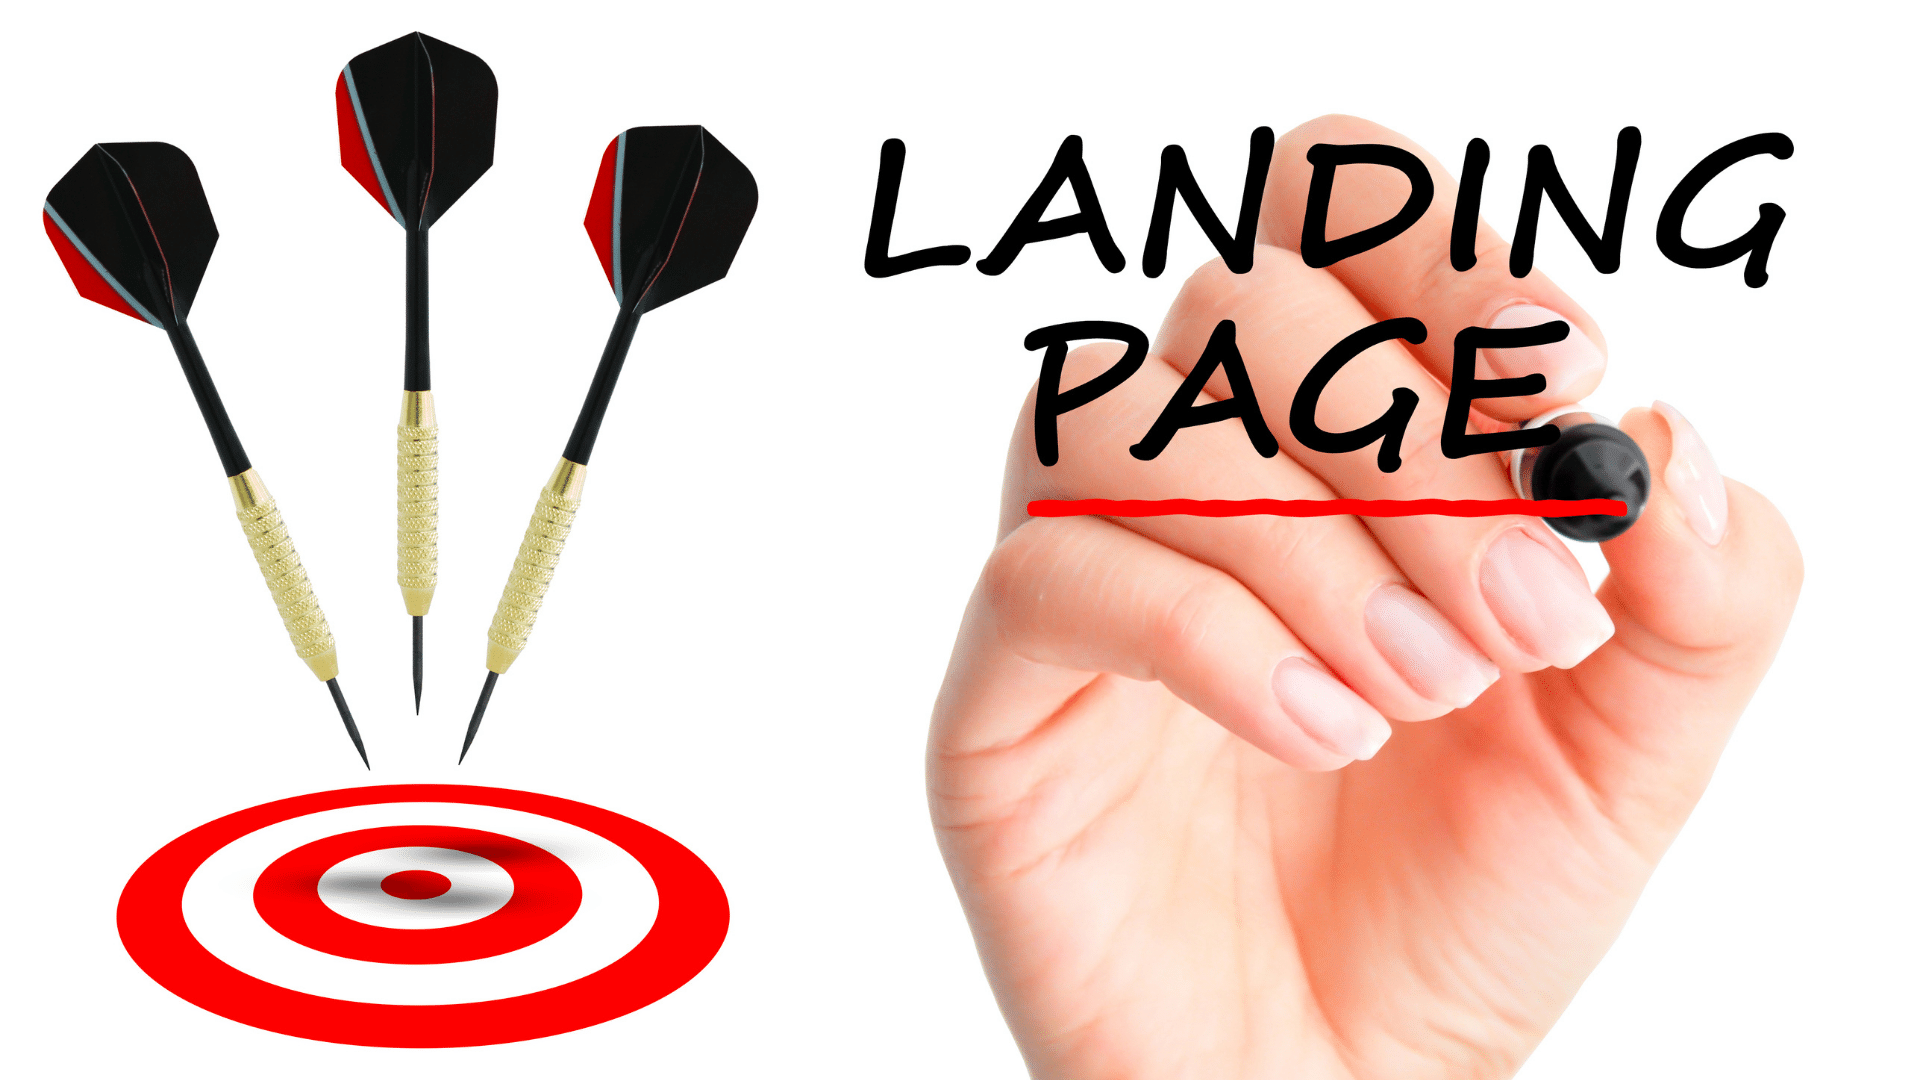 Landing page text with a marker